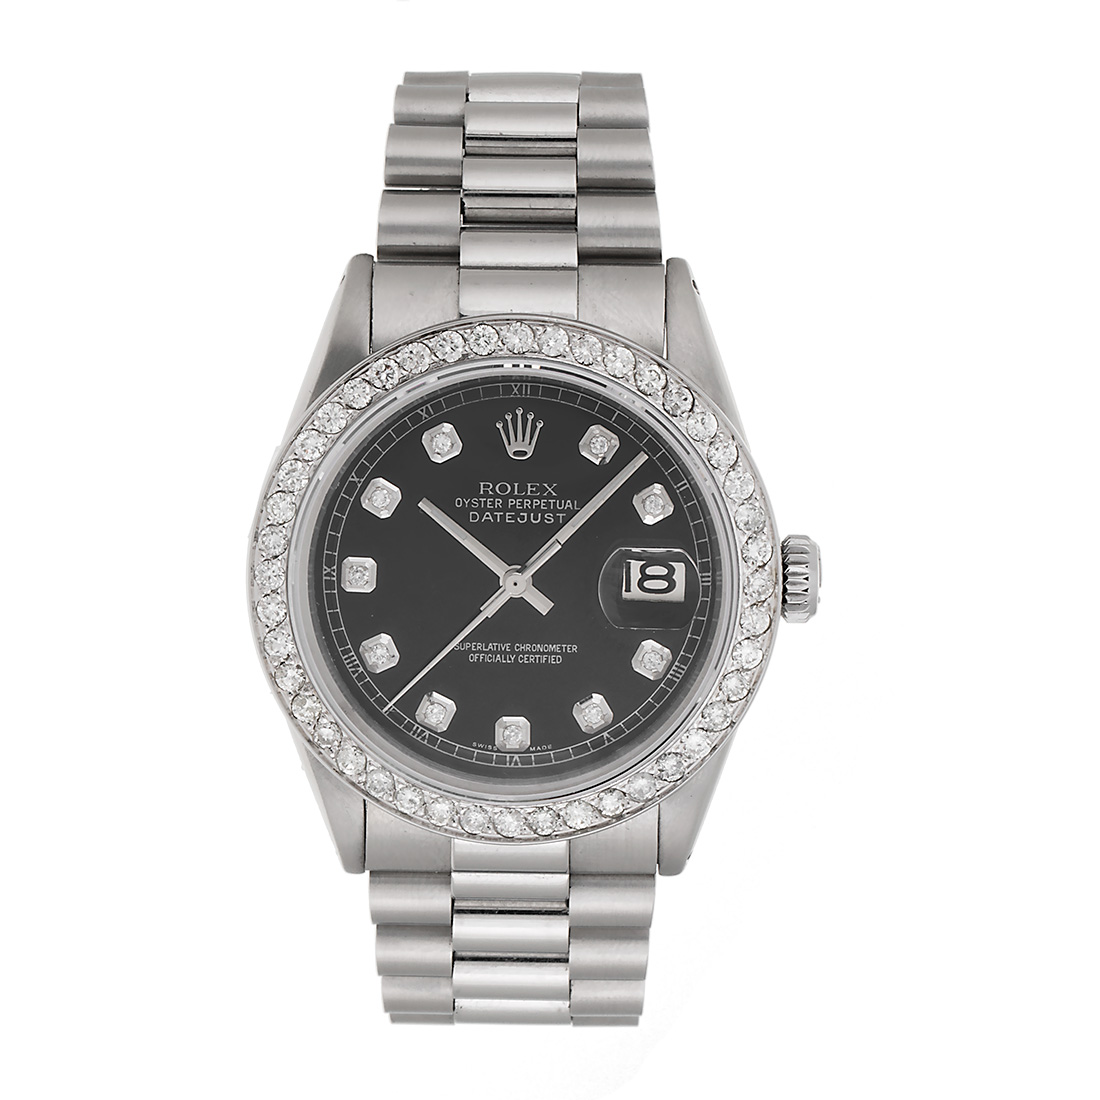 Steel Rolex Rolex Datejust Presidential Stainless Steel Custom Black Dial 2 5ct Diamond Bezel Mens Watch